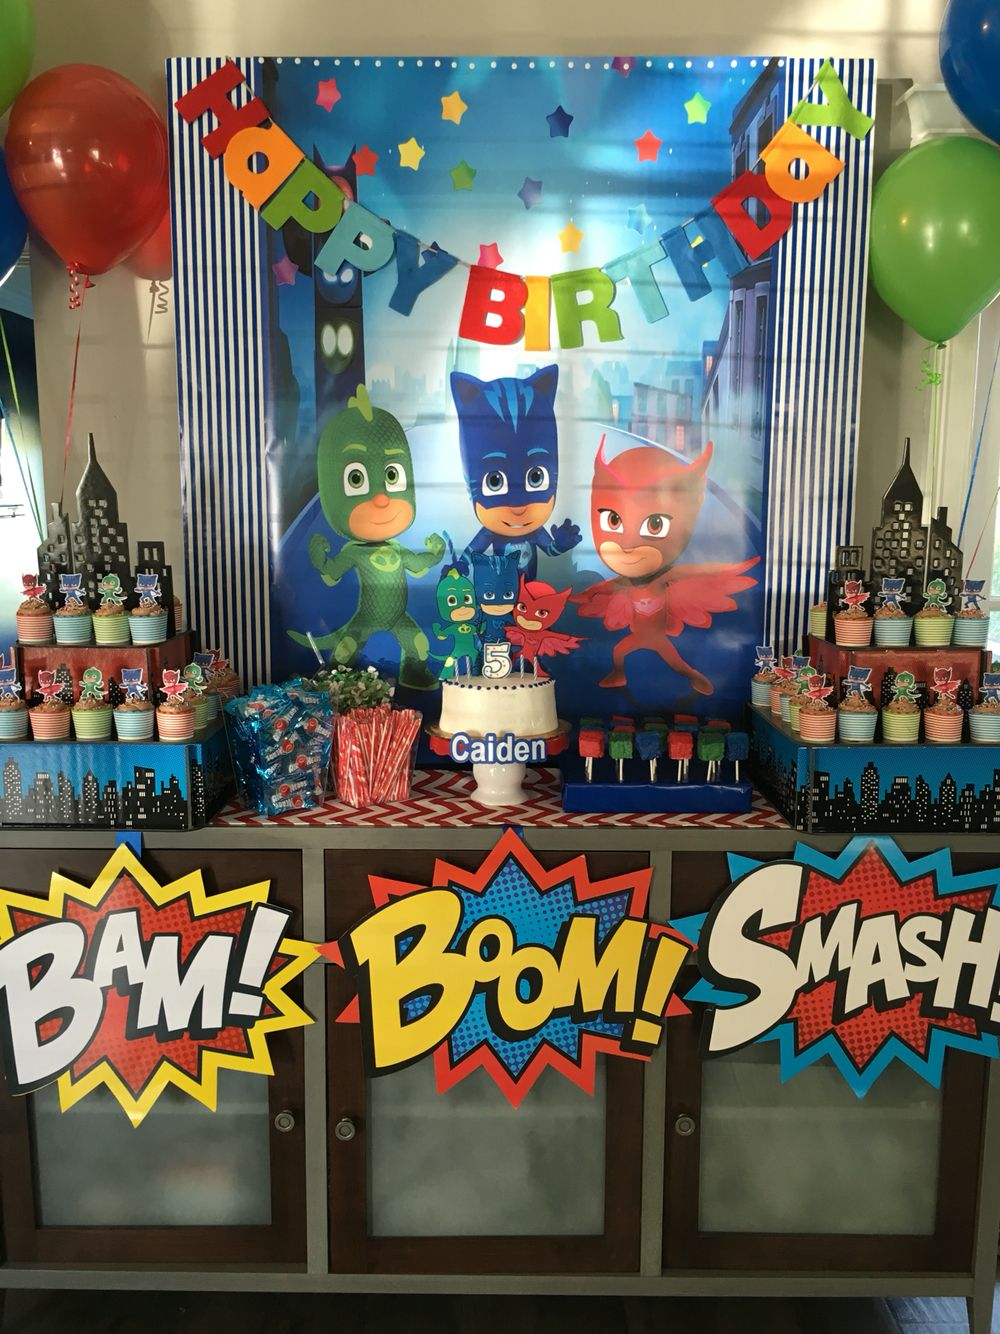 Pj Mask Party Decorations Interesting Festa A Tema Pj Masks_Buffet  Ideas  Pinterest  Pj Mask Mask Decorating Inspiration